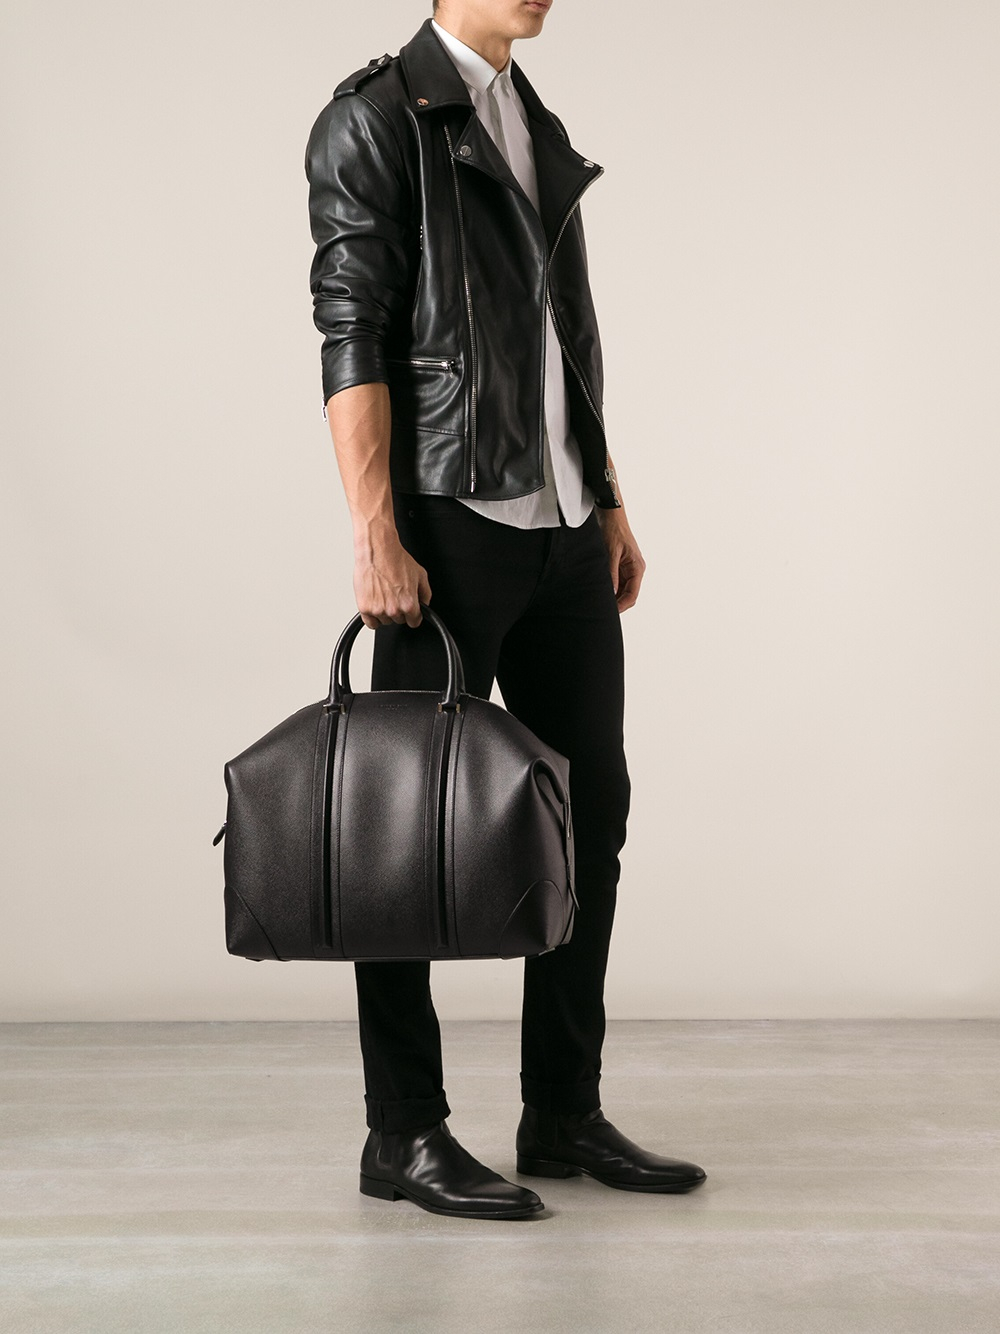 Givenchy Luggage Bag In Black For Men Lyst